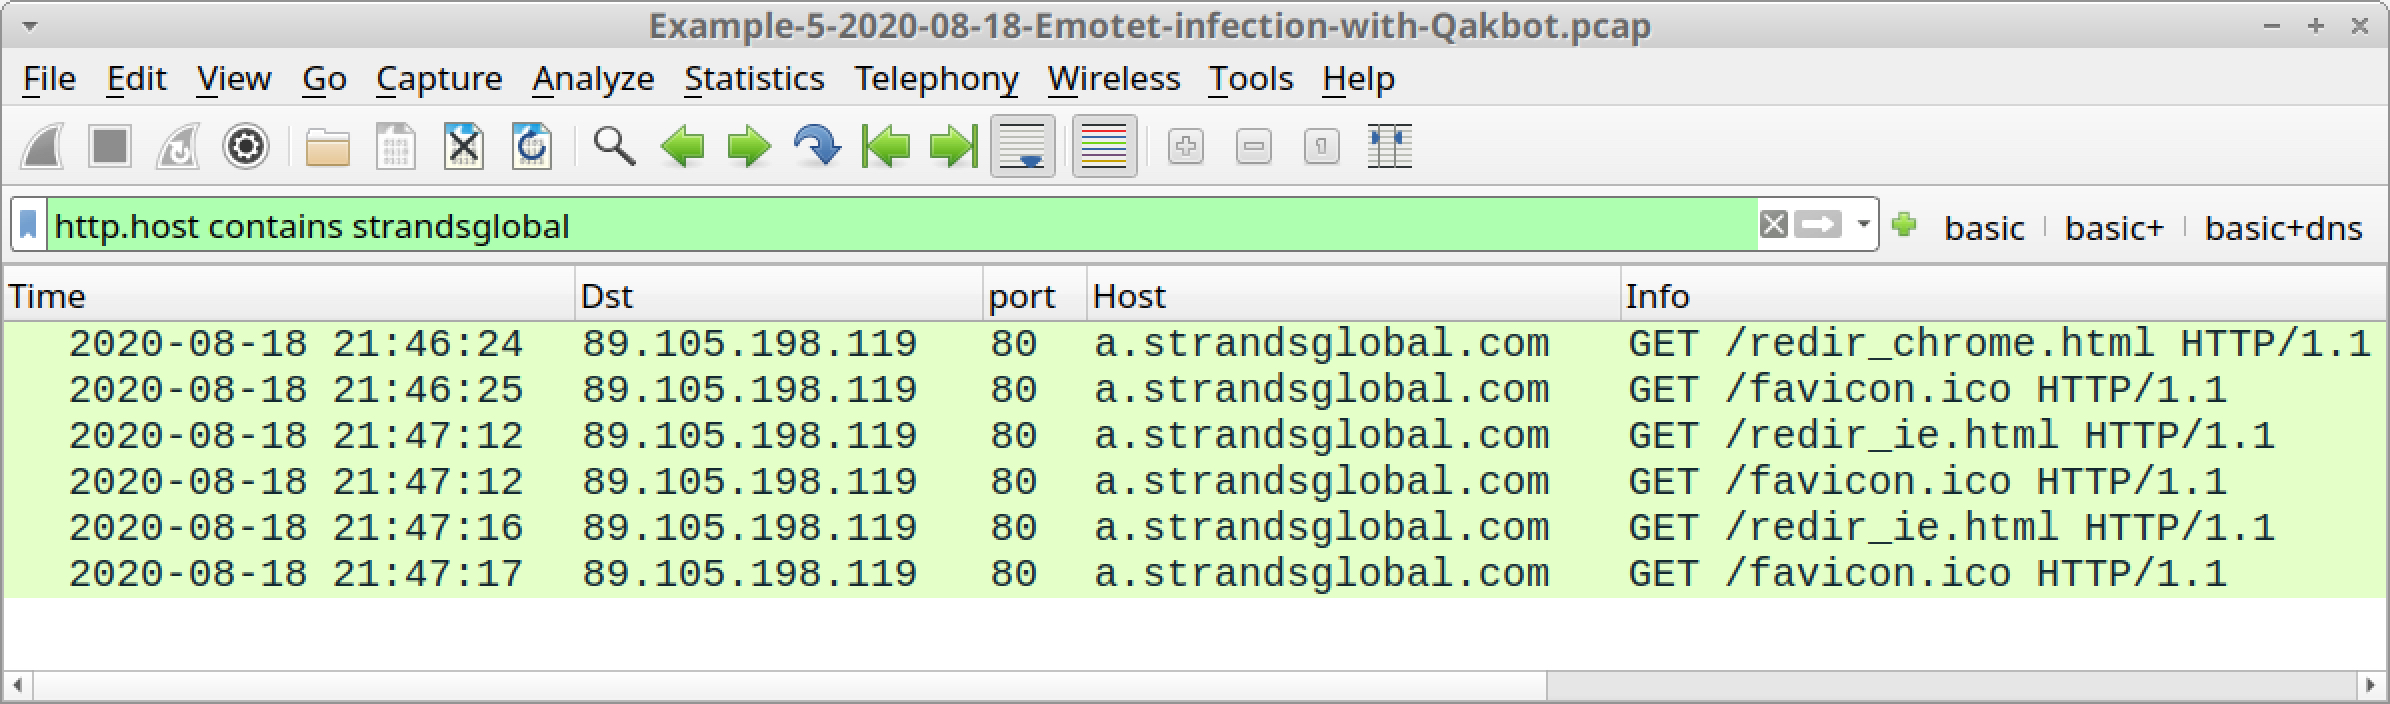 Figure 35. Filtering for traffic to a.stransglobal[.]com, typically generated by Qakbot prior to late November 2020.